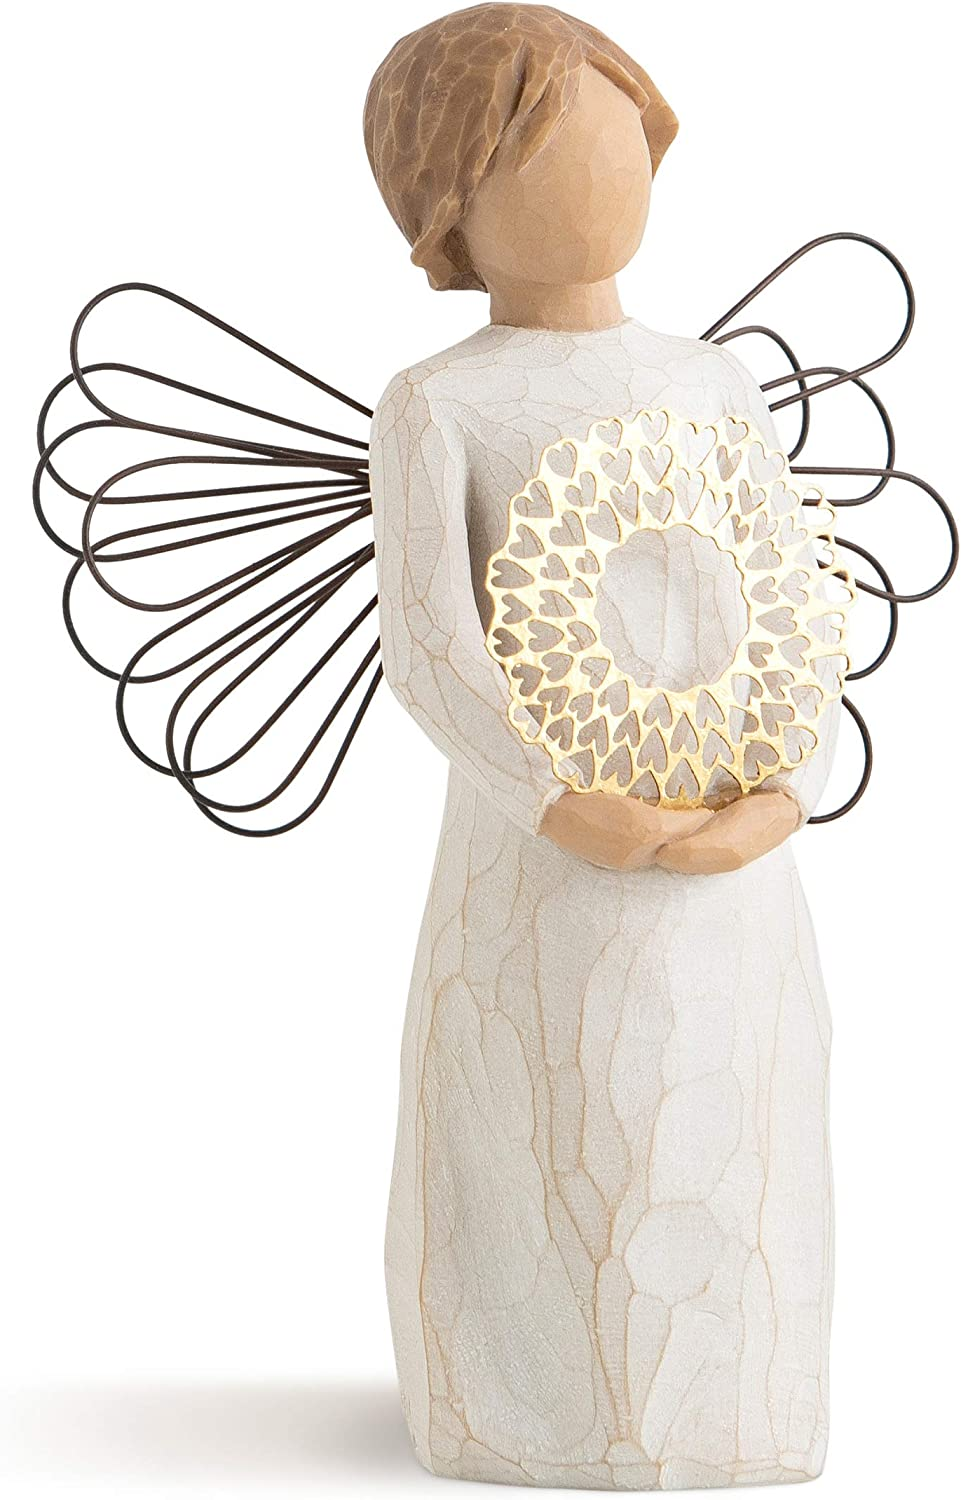 Willow Tree Sweetheart Angel, Sculpted Hand-Painted Figure